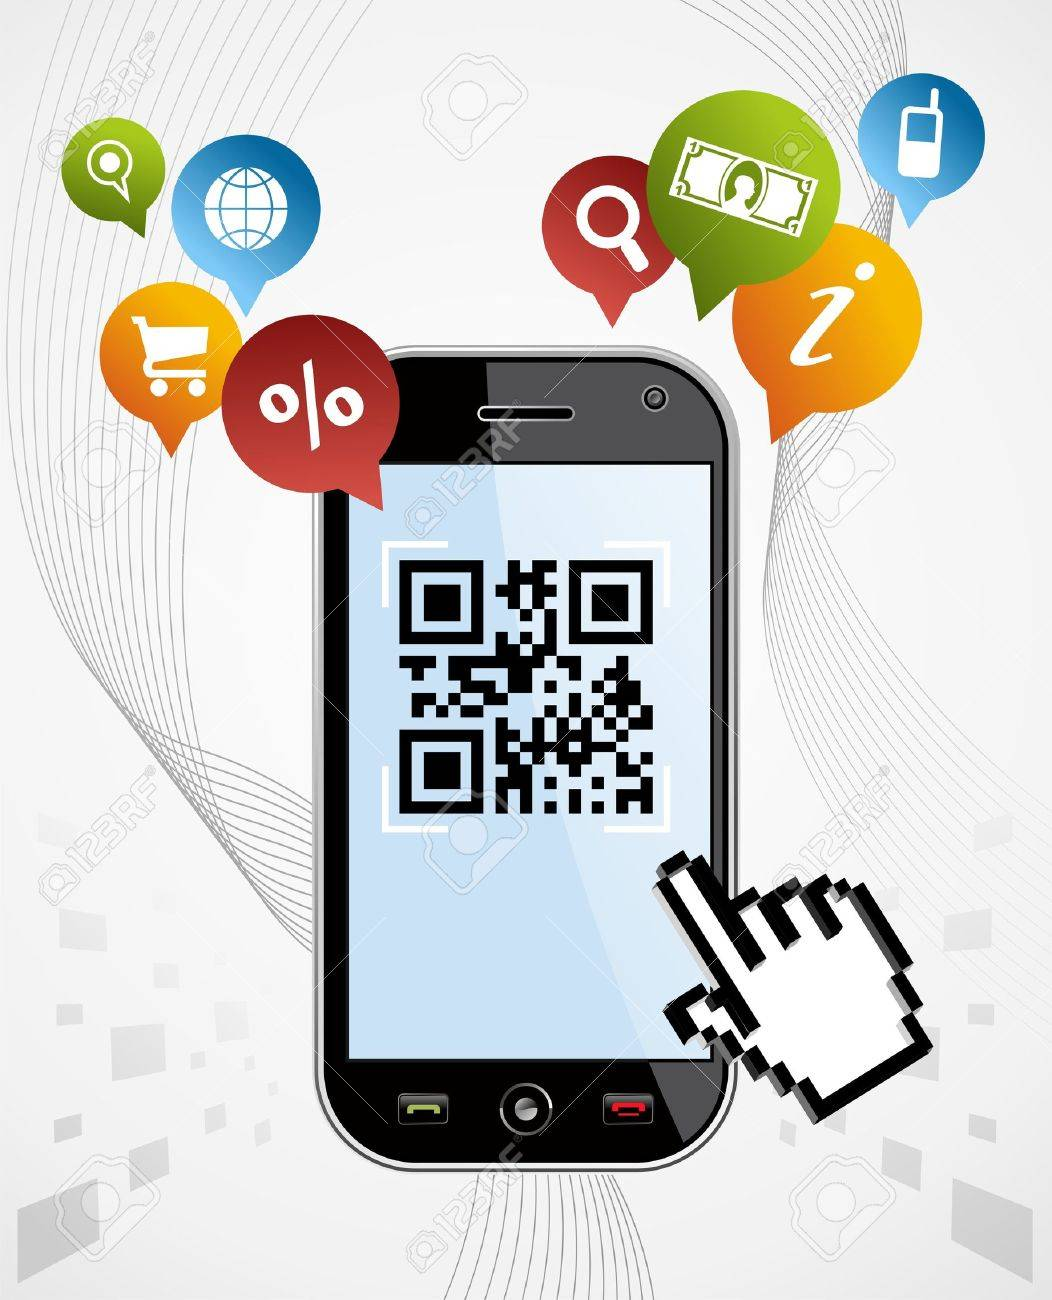 Black smartphone with QR code app on white background  EPS 8 vector, cleanly built with no open shapes or strokes  Grouped and ordered in layers for easy editing Stock Vector - 12855608